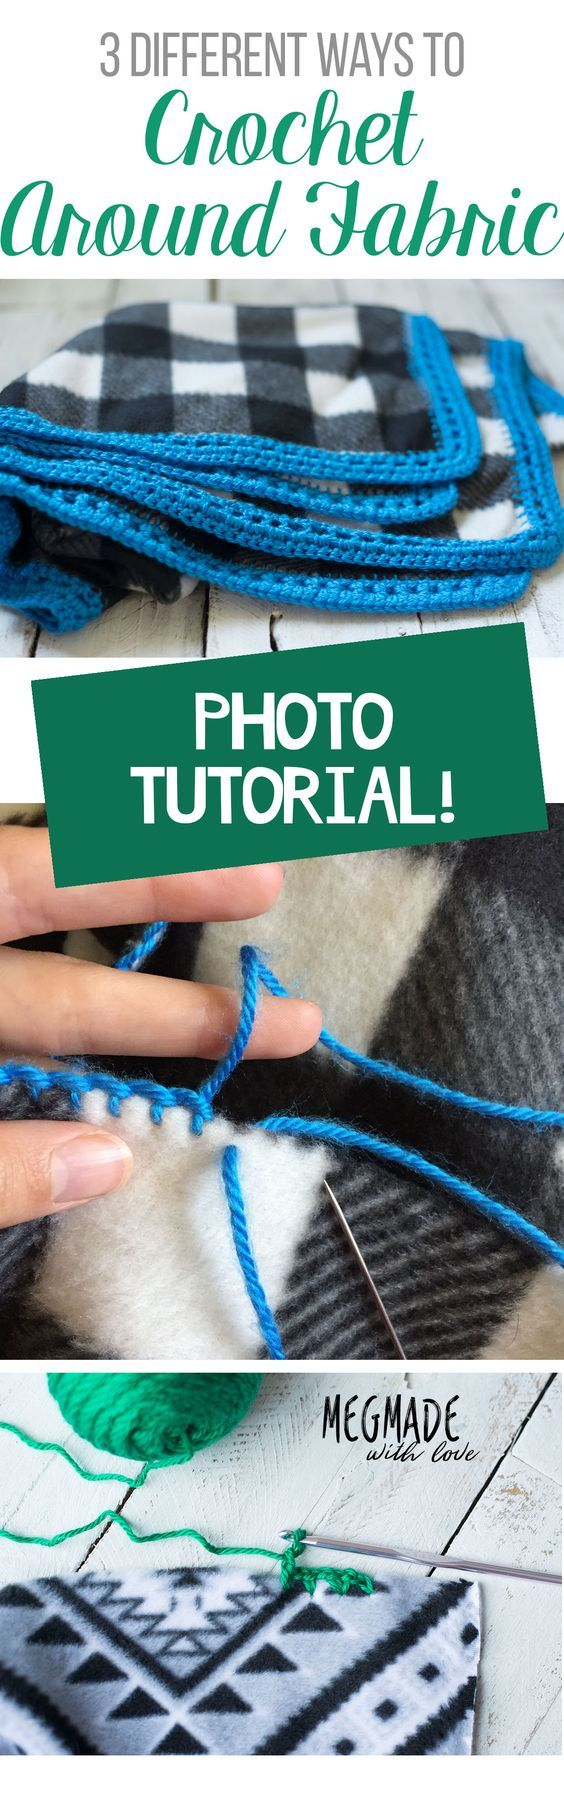 If you've ever wondered how to crochet around fabric, I've got THREE different ways to do it in my latest blog post jam-packed with lots of photos! P.S. Speaking from experience, crocheting around a square of fleece makes a great baby shower gift-- fast and quick and you still get that &qu